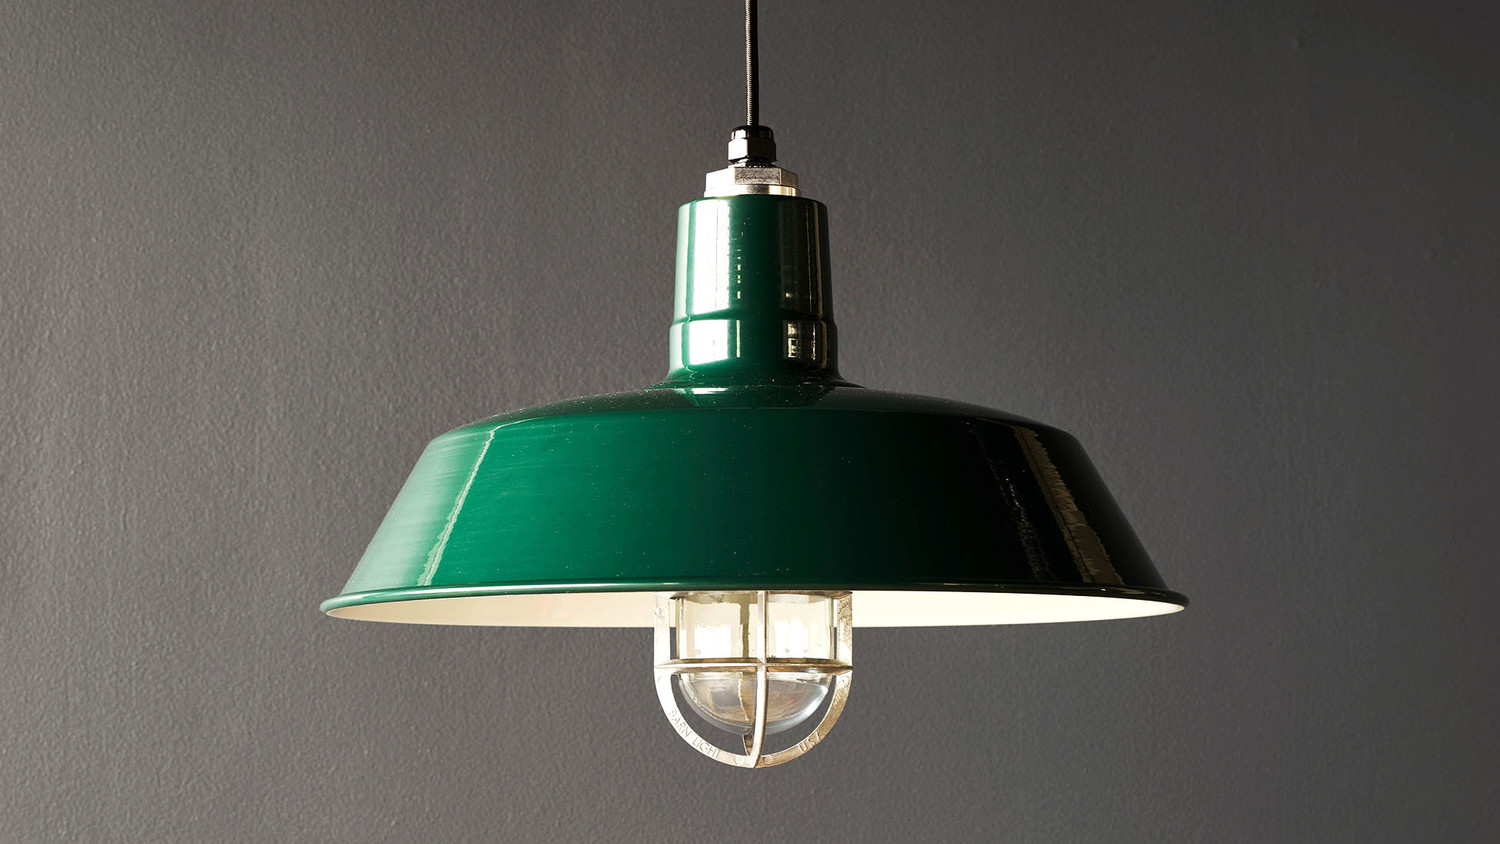 Don't Miss This Deal On Fresno Dome 1 Light Bell Pendant Regarding Fresno Dome 1 Light Bell Pendants (Photo 23 of 30)